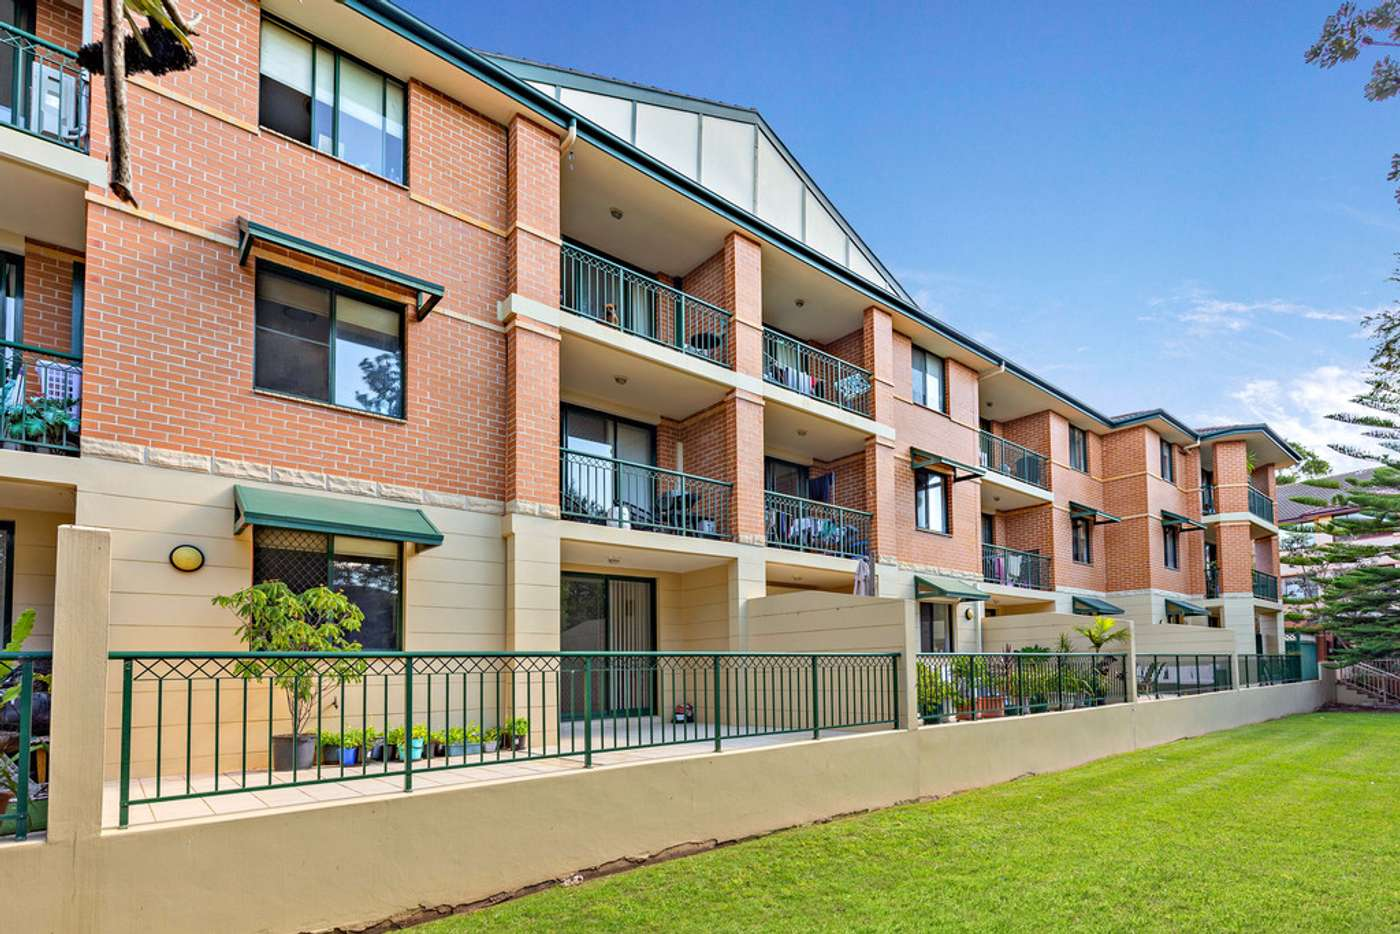 Main view of Homely unit listing, 149/18-20 Knocklayde Street, Ashfield NSW 2131